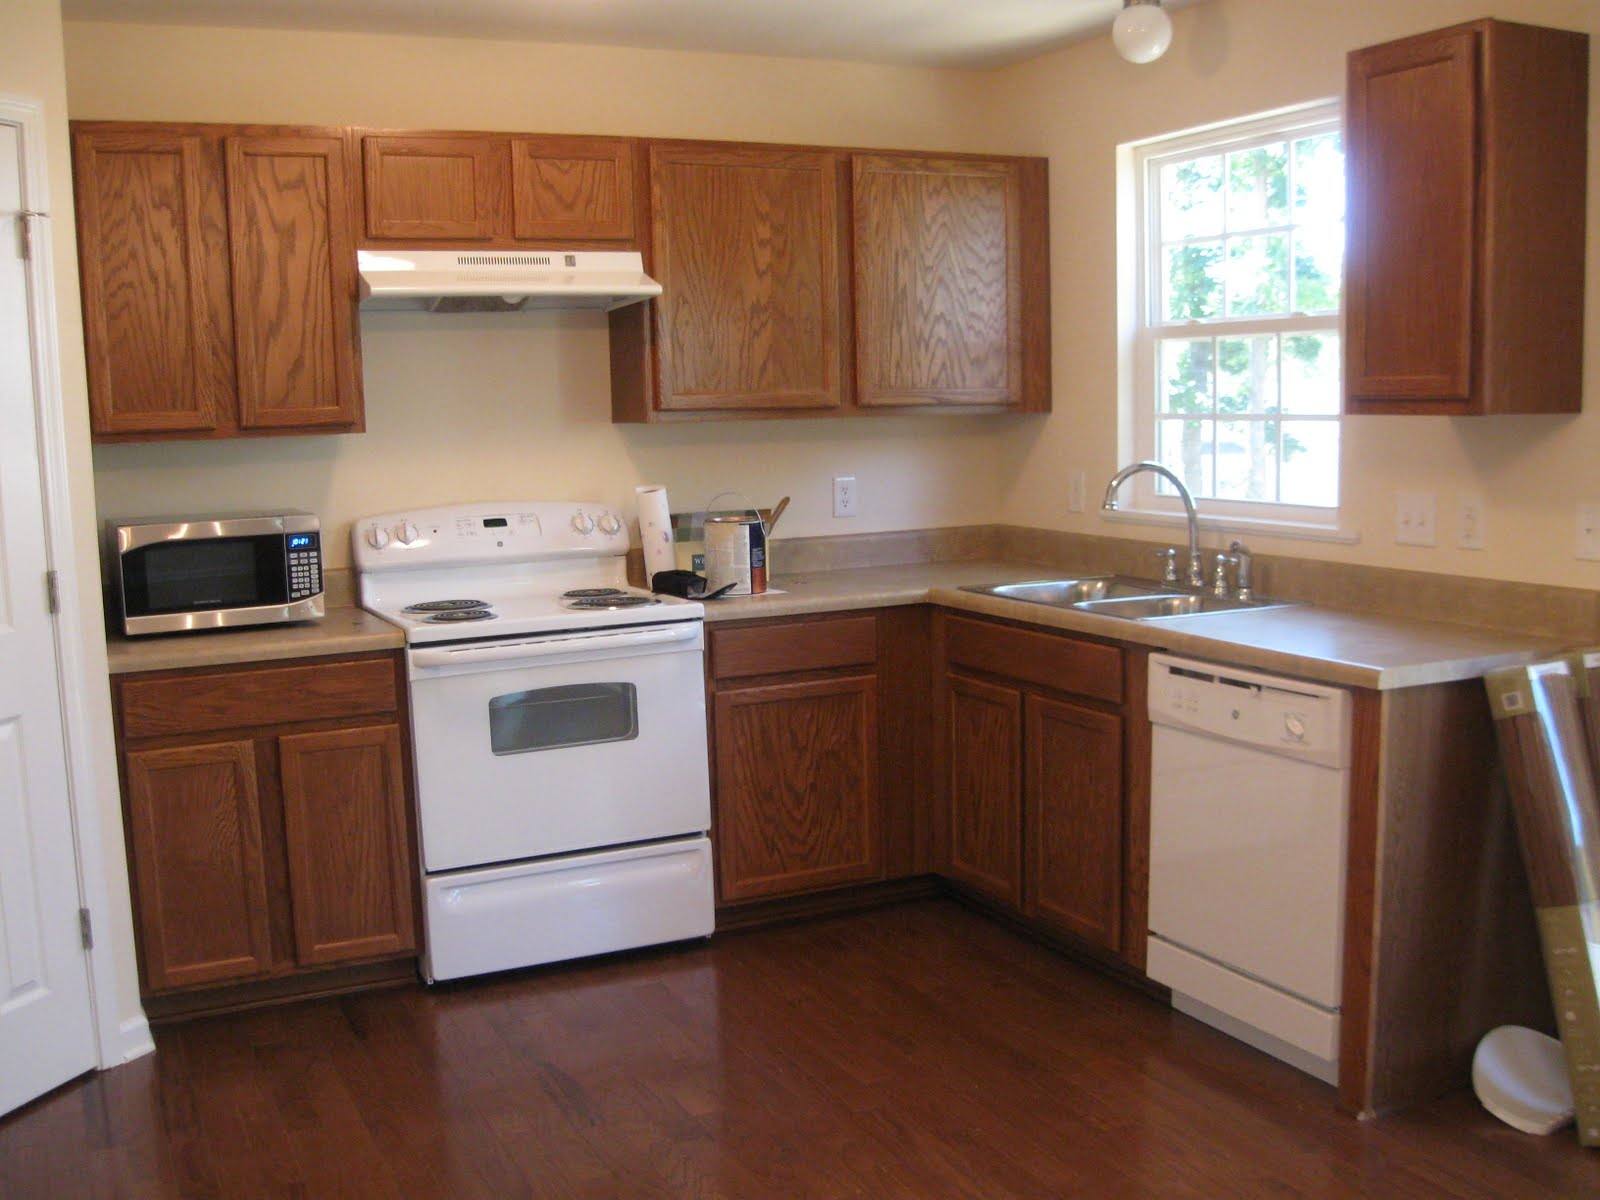 Wooden Painting Kitchen Cabinets Decoration (View 10 of 10)